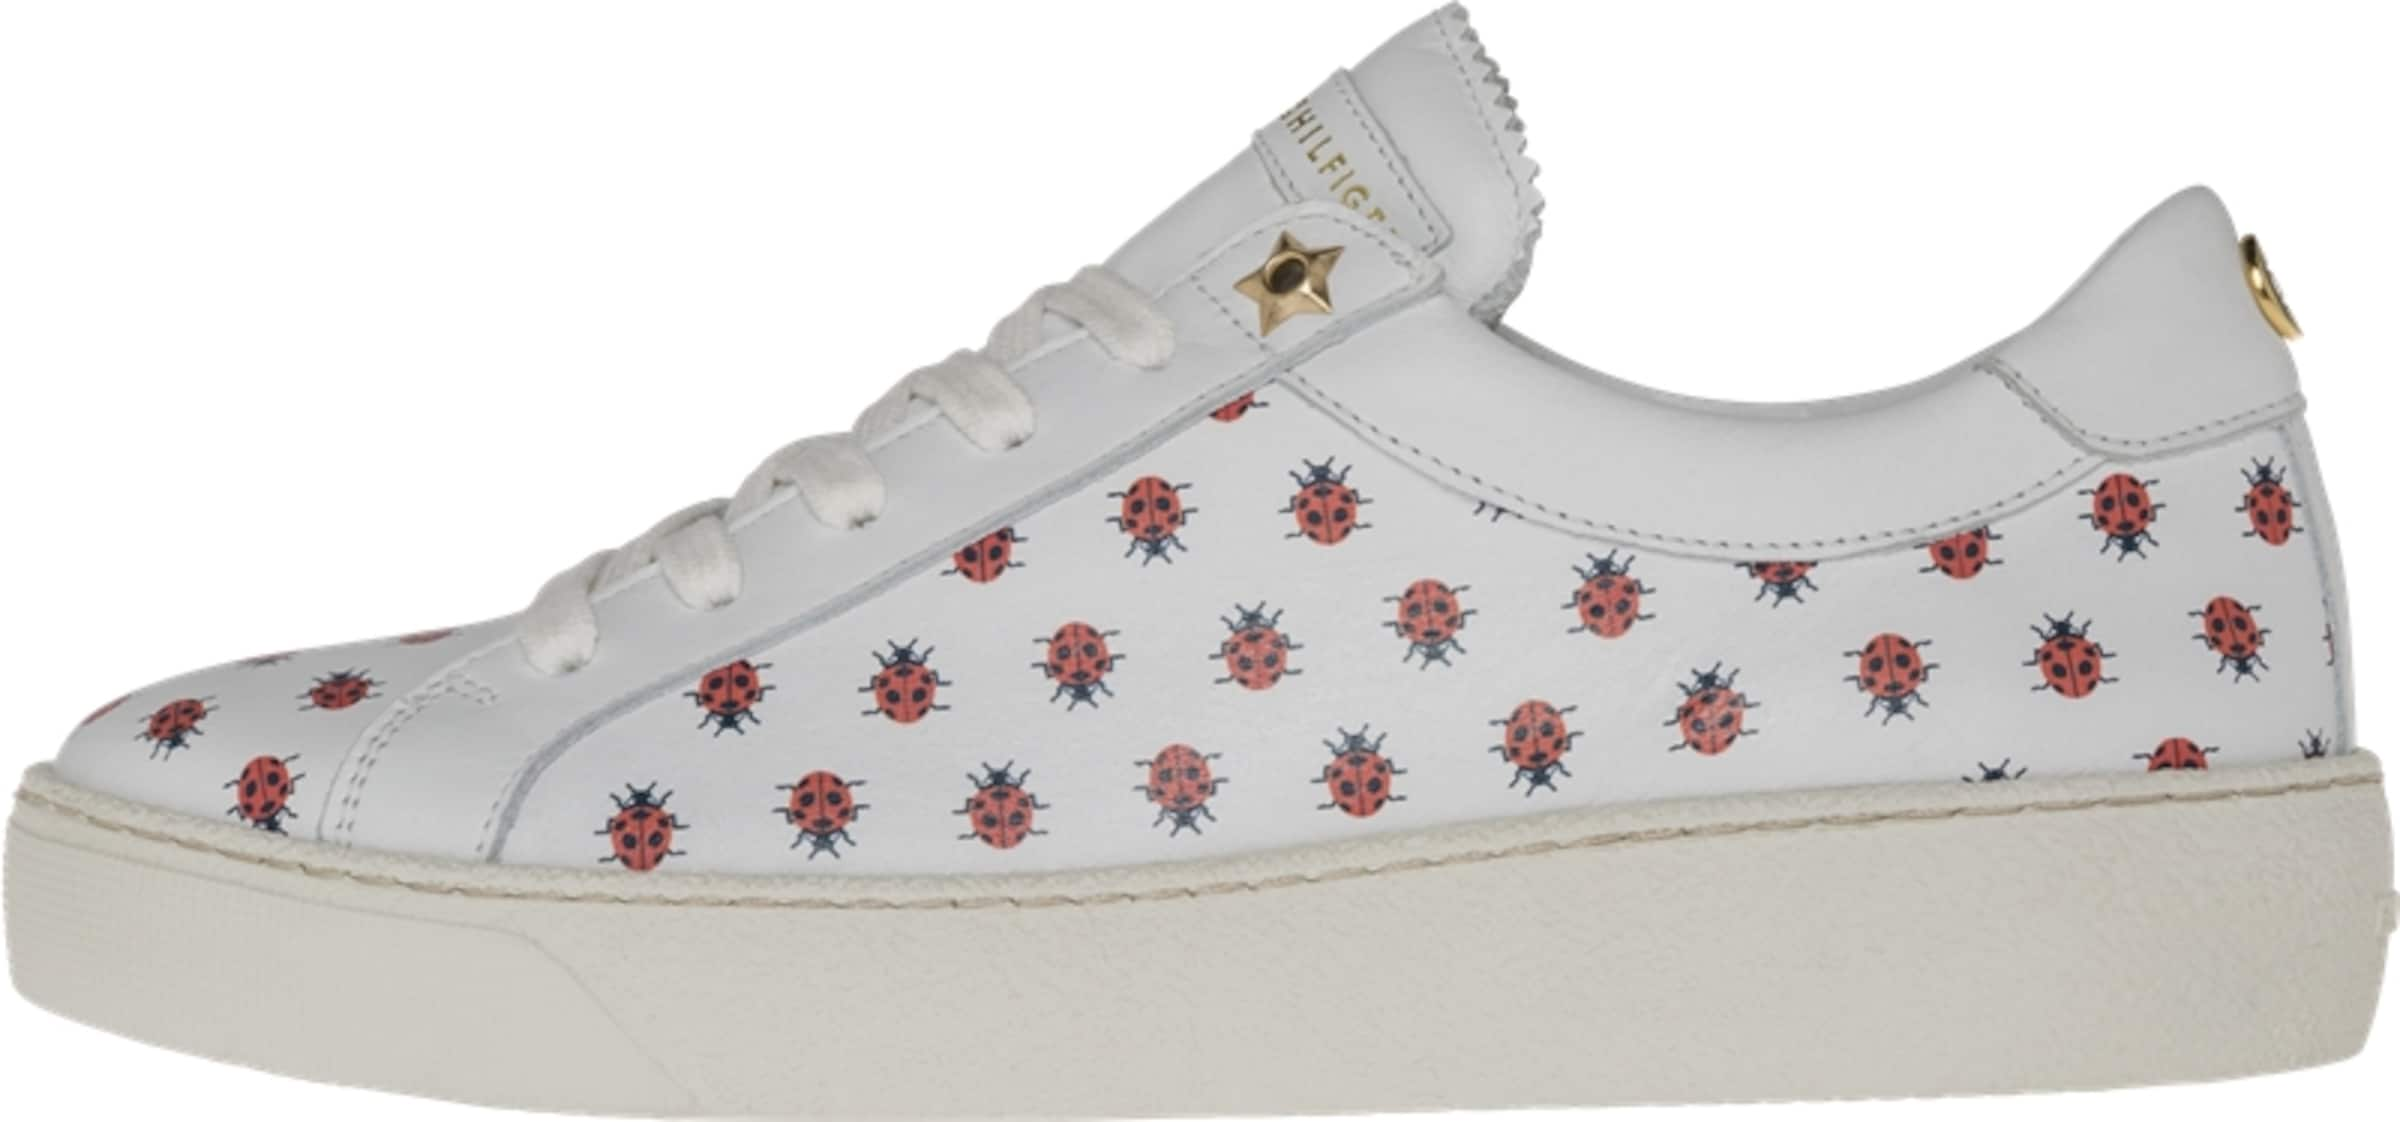 TOMMY HILFIGER Sneakers  LO LO  S1285UZIE 12A 64a25a